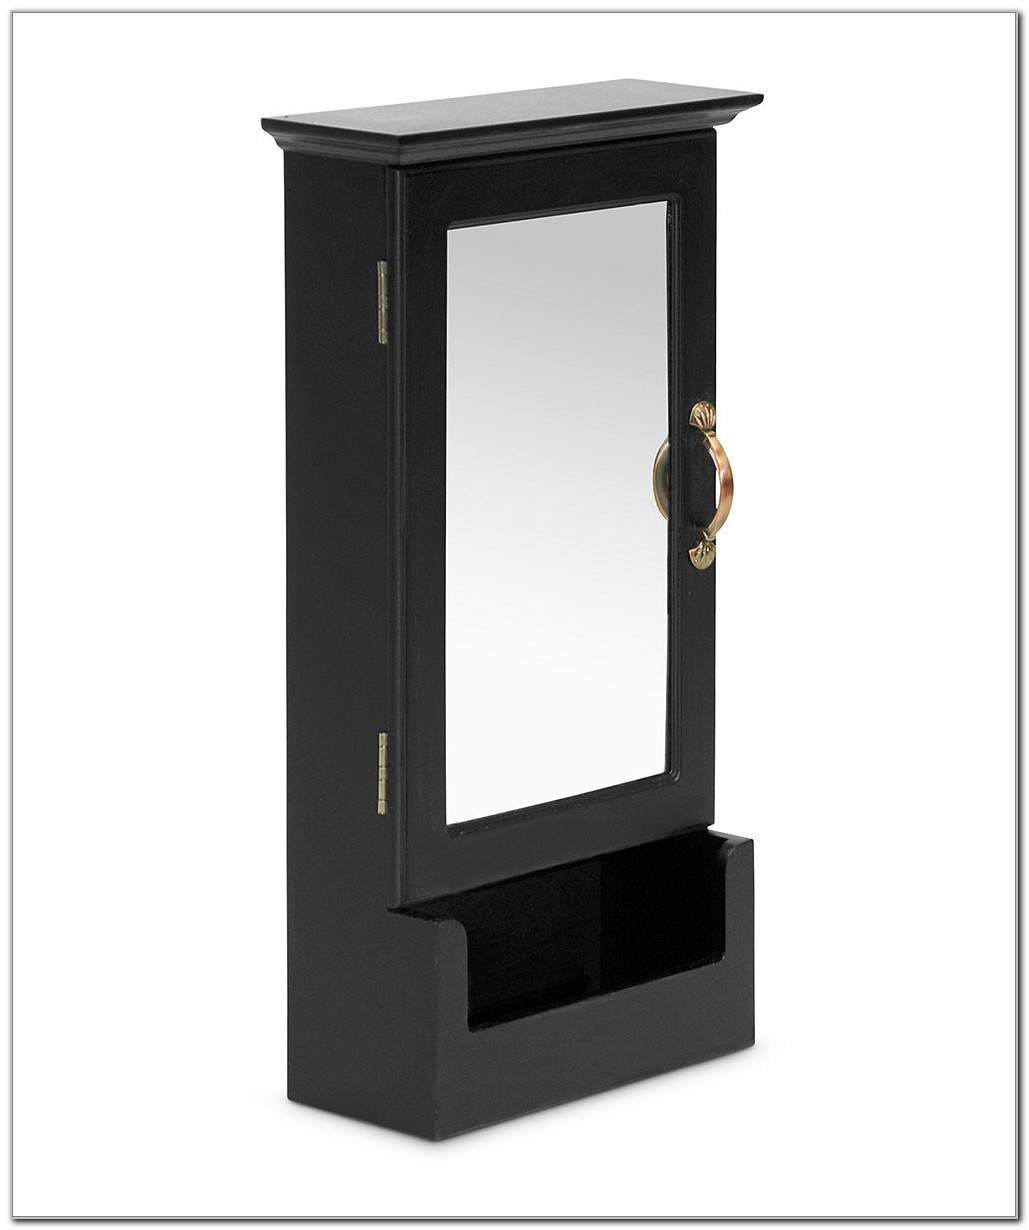 Black Mirrored Wall Cabinet